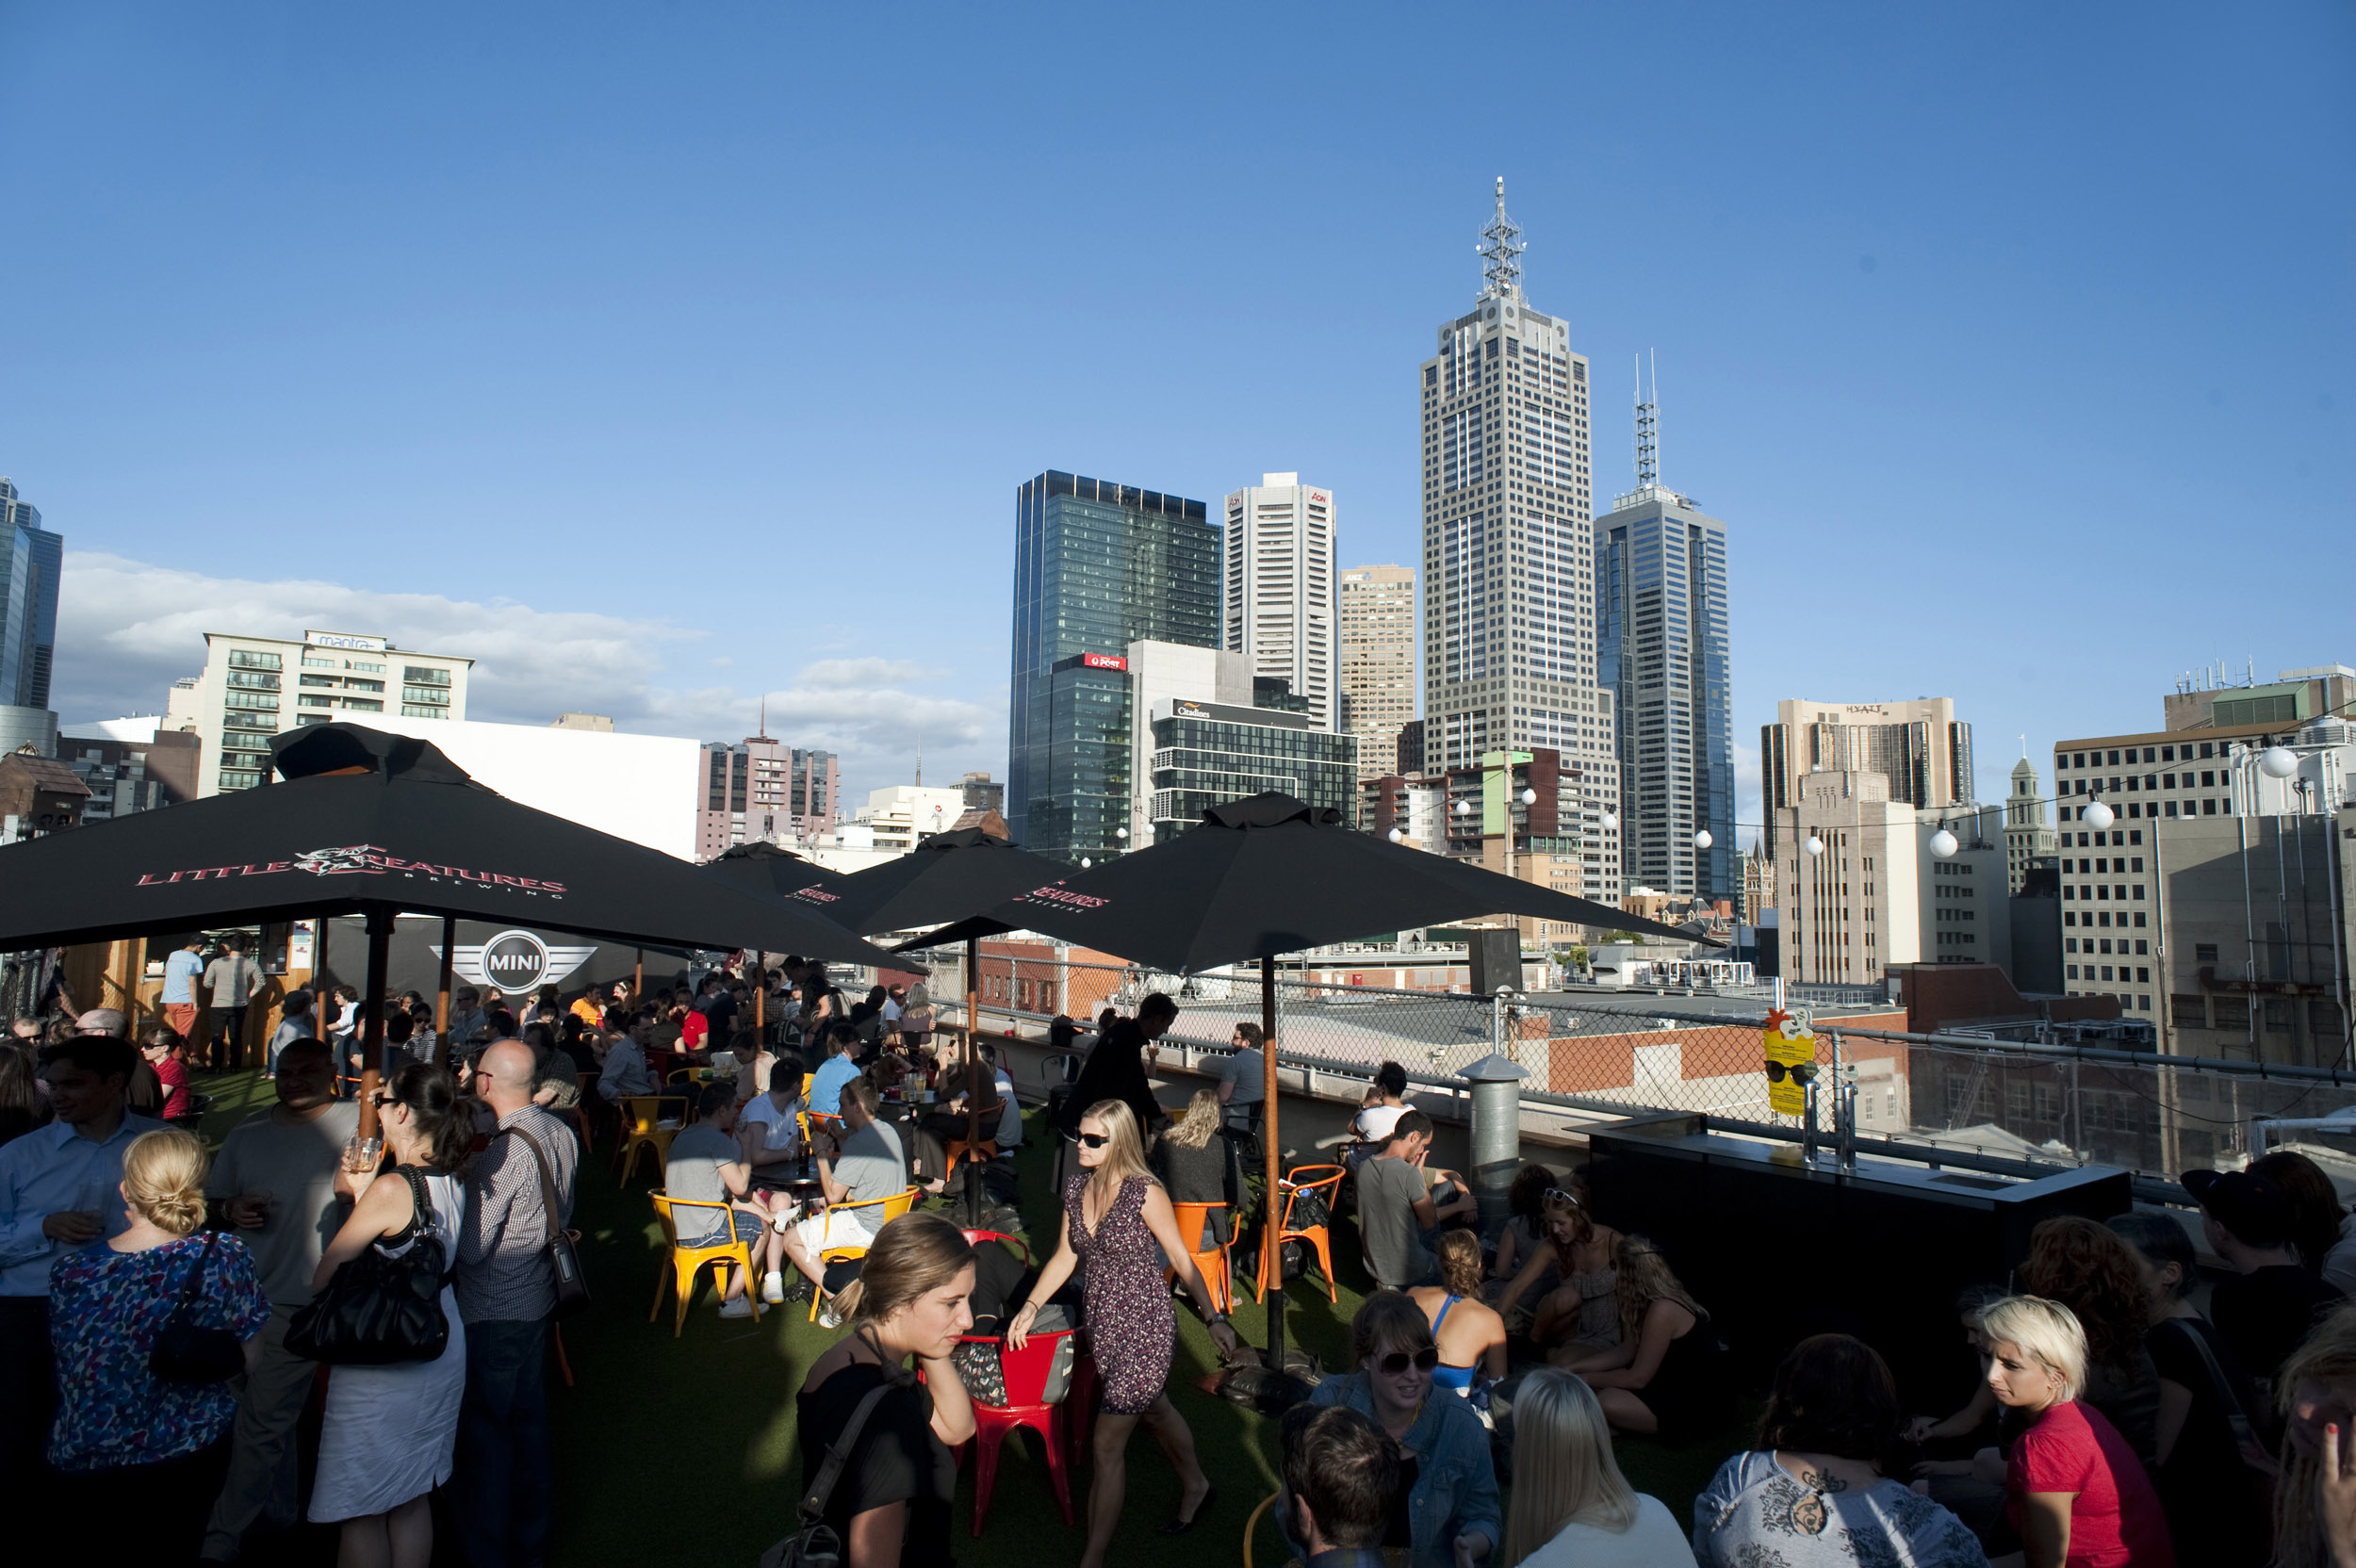 A bustling, busy rooftop bar on a clear, blue day in the centre of Melbourne city, Australia.